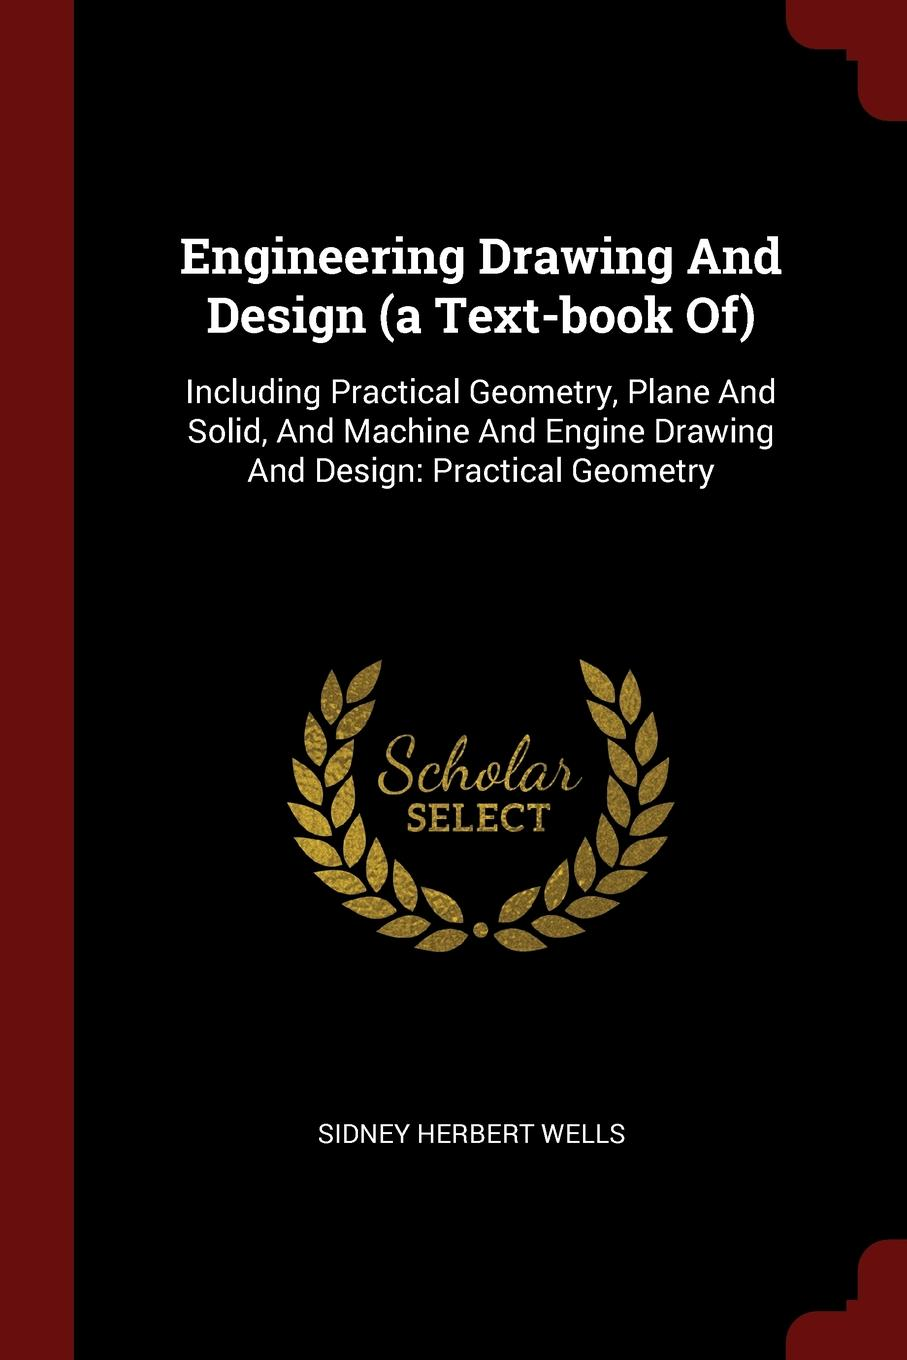 Sidney Herbert Wells Engineering Drawing And Design (a Text-book Of). Including Practical Geometry, Plane And Solid, And Machine And Engine Drawing And Design: Practical Geometry